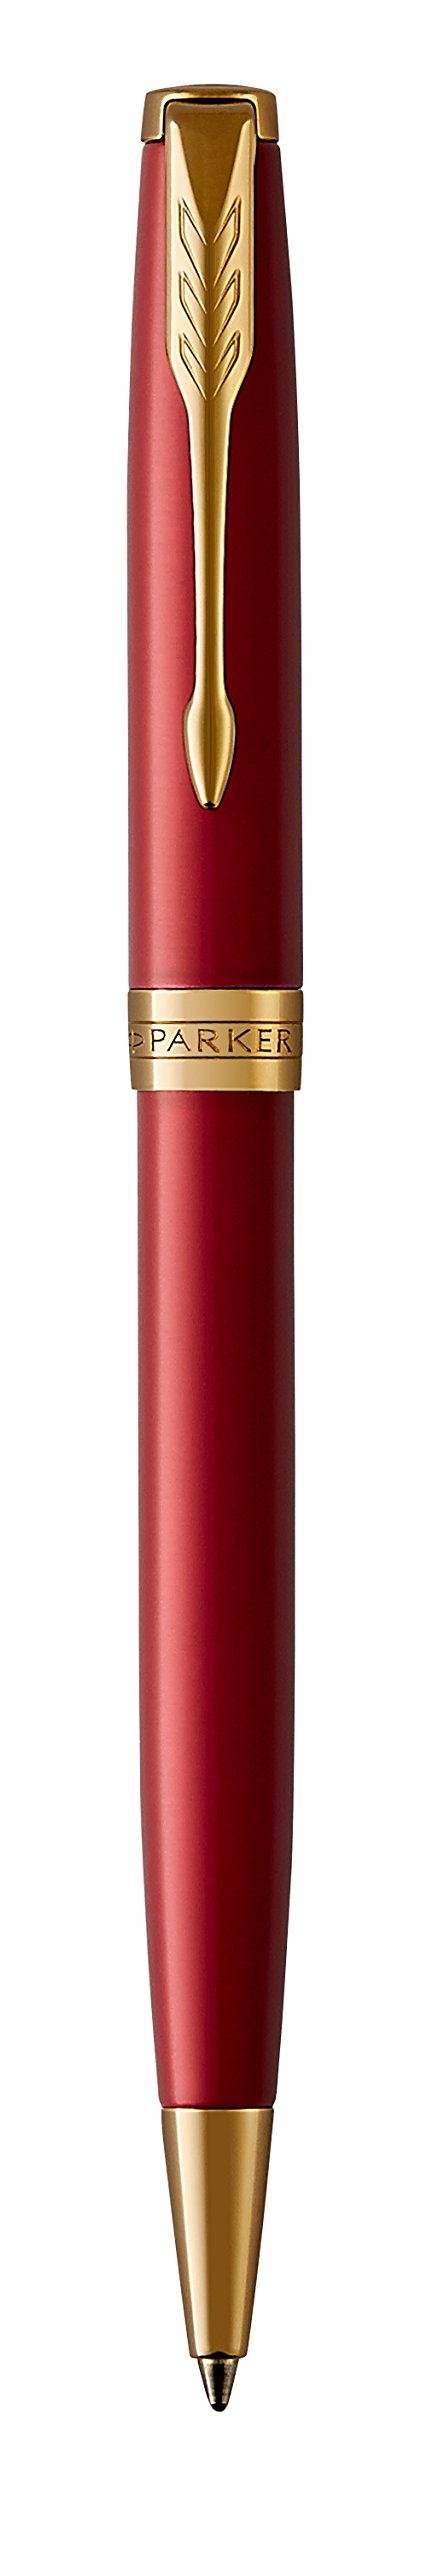 PARKER Sonnet Ballpoint Pen, Red Lacquer with Gold Trim, Medium Point Black Ink (1931476) by Parker (Image #5)